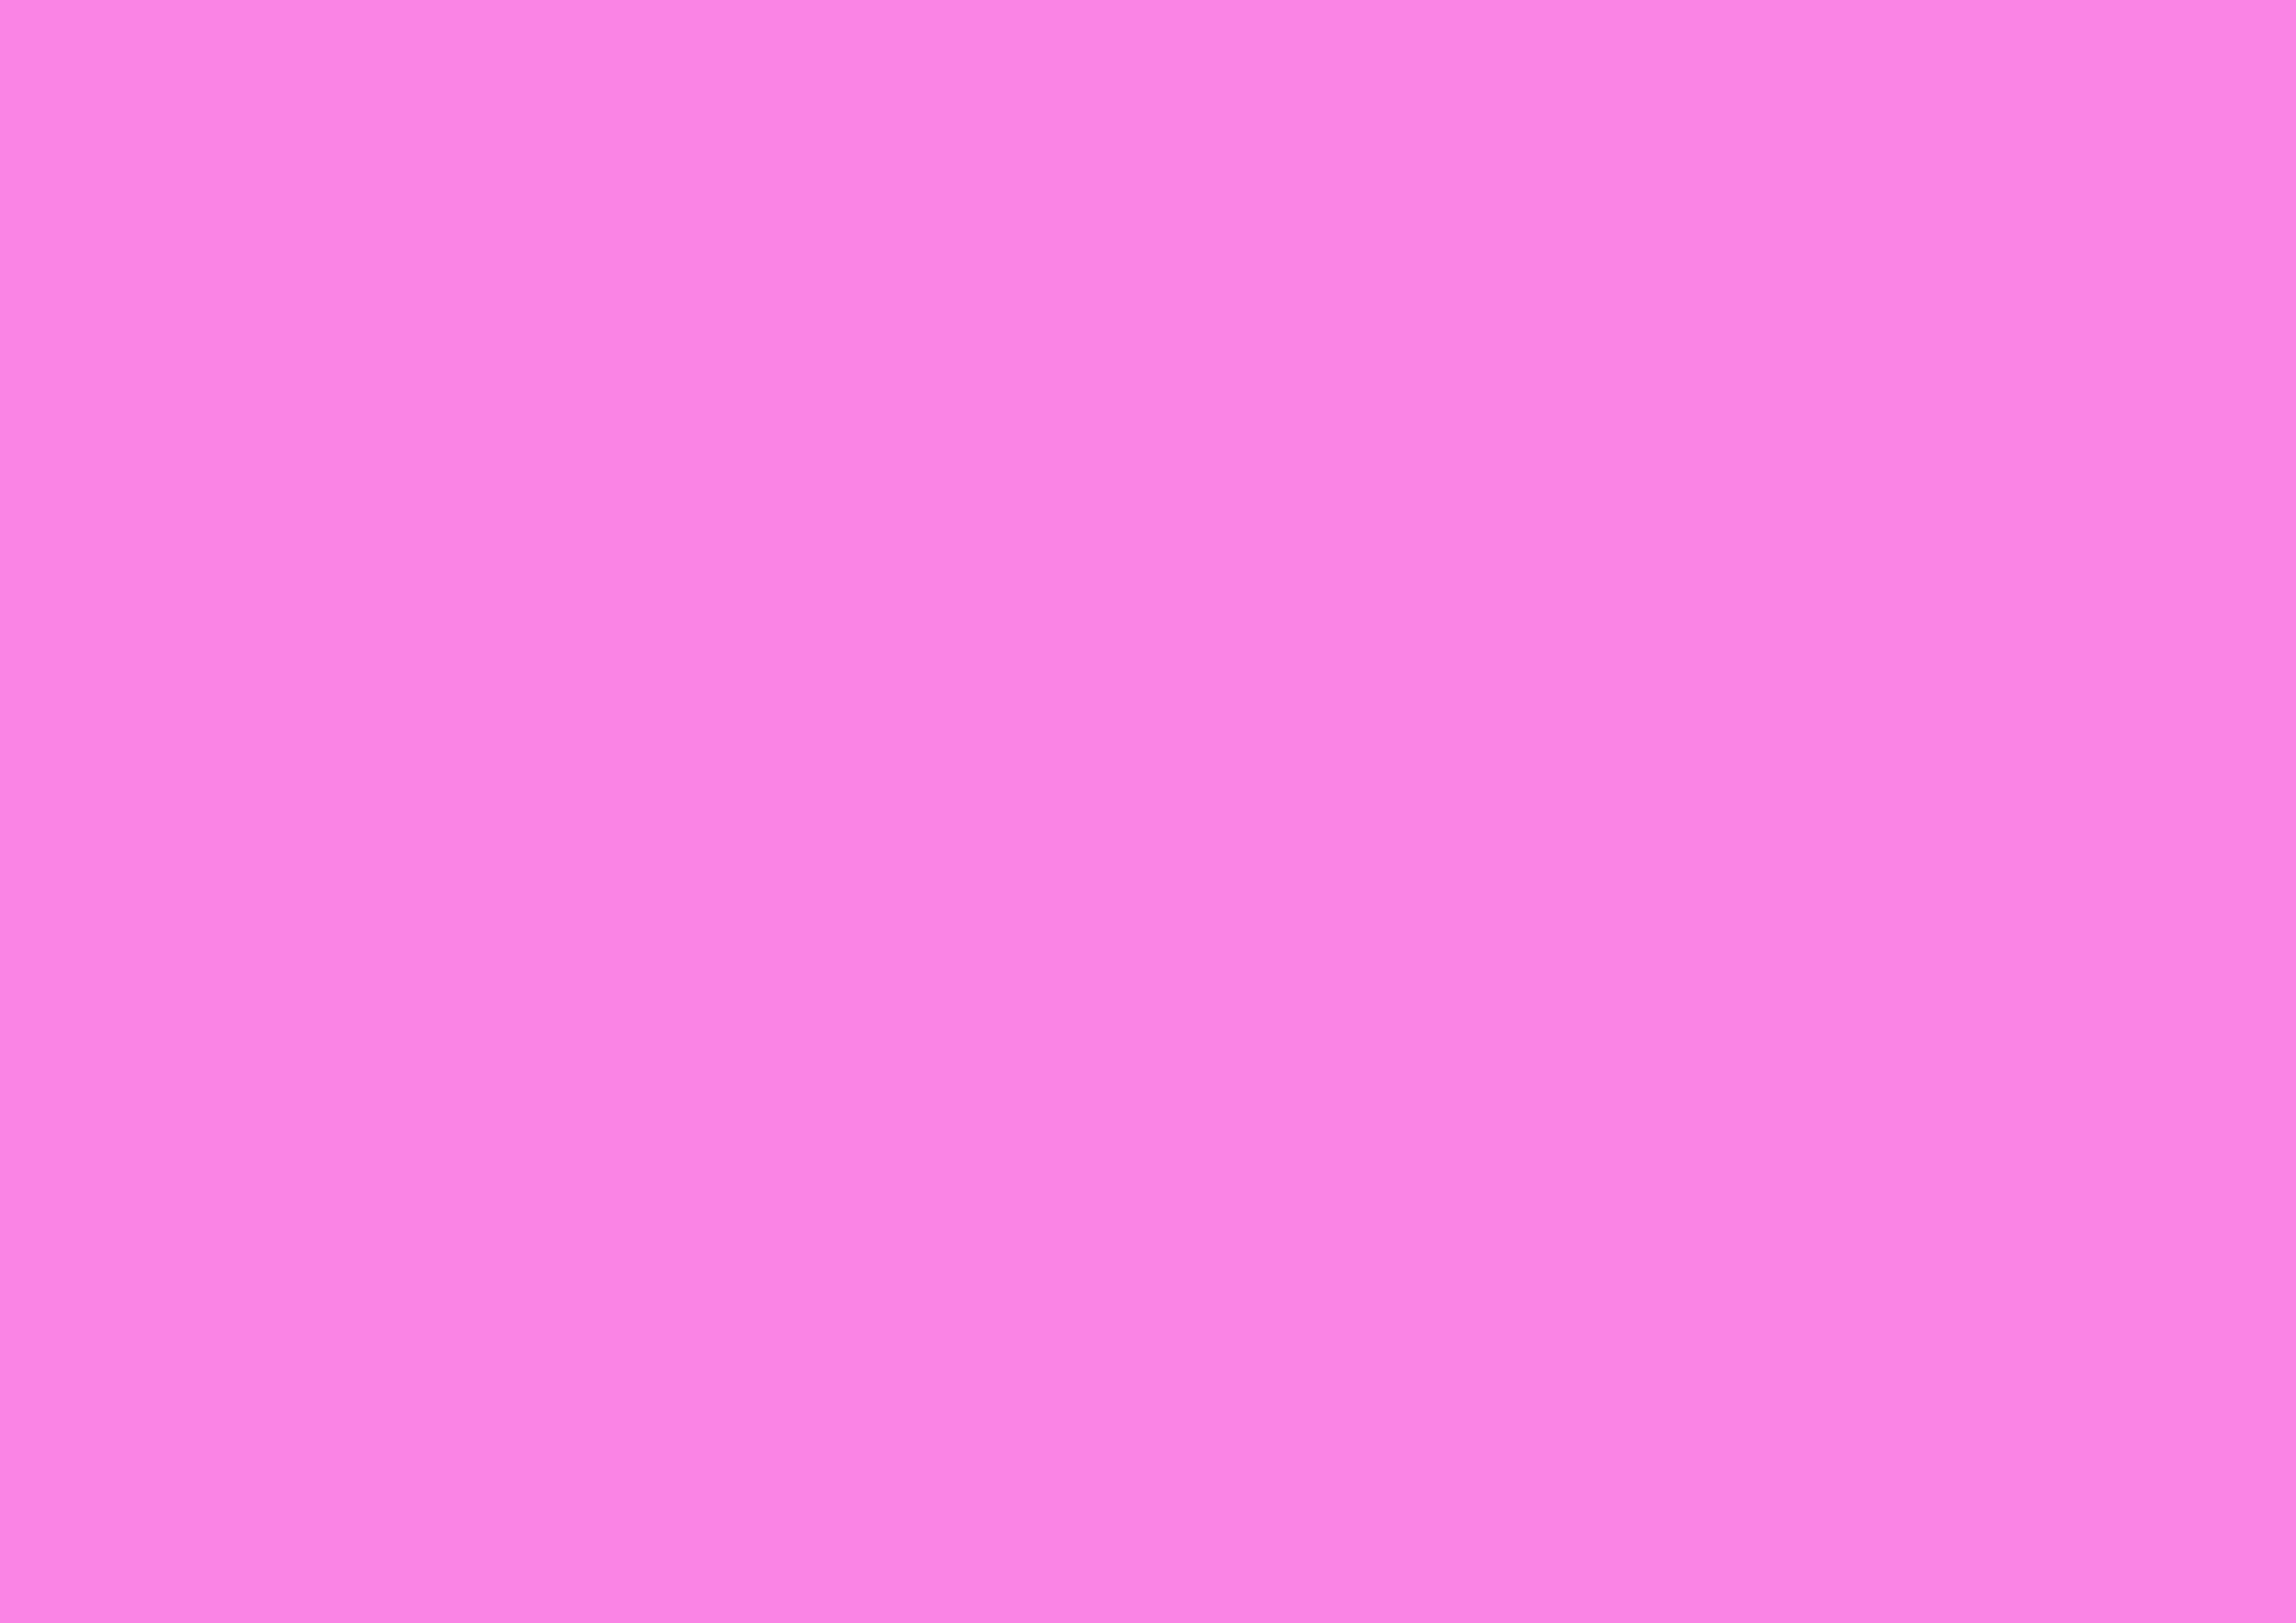 3508x2480 Pale Magenta Solid Color Background